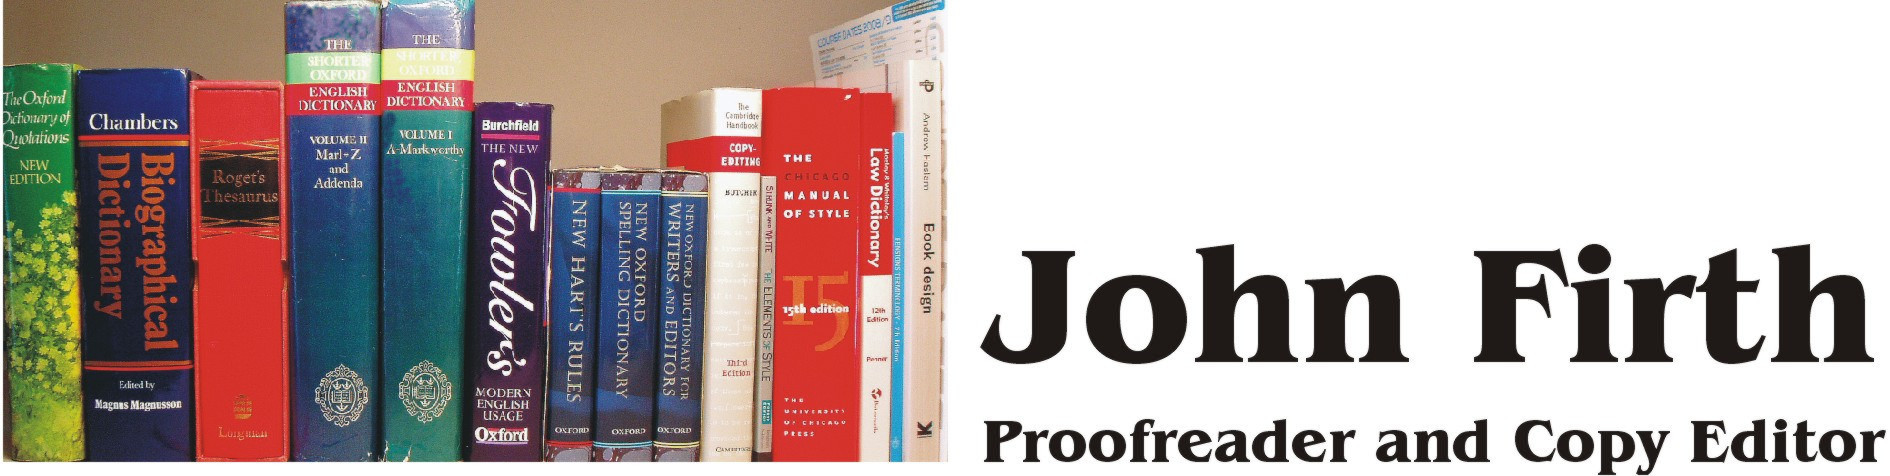 John Firth Proofreader & Copy Editor